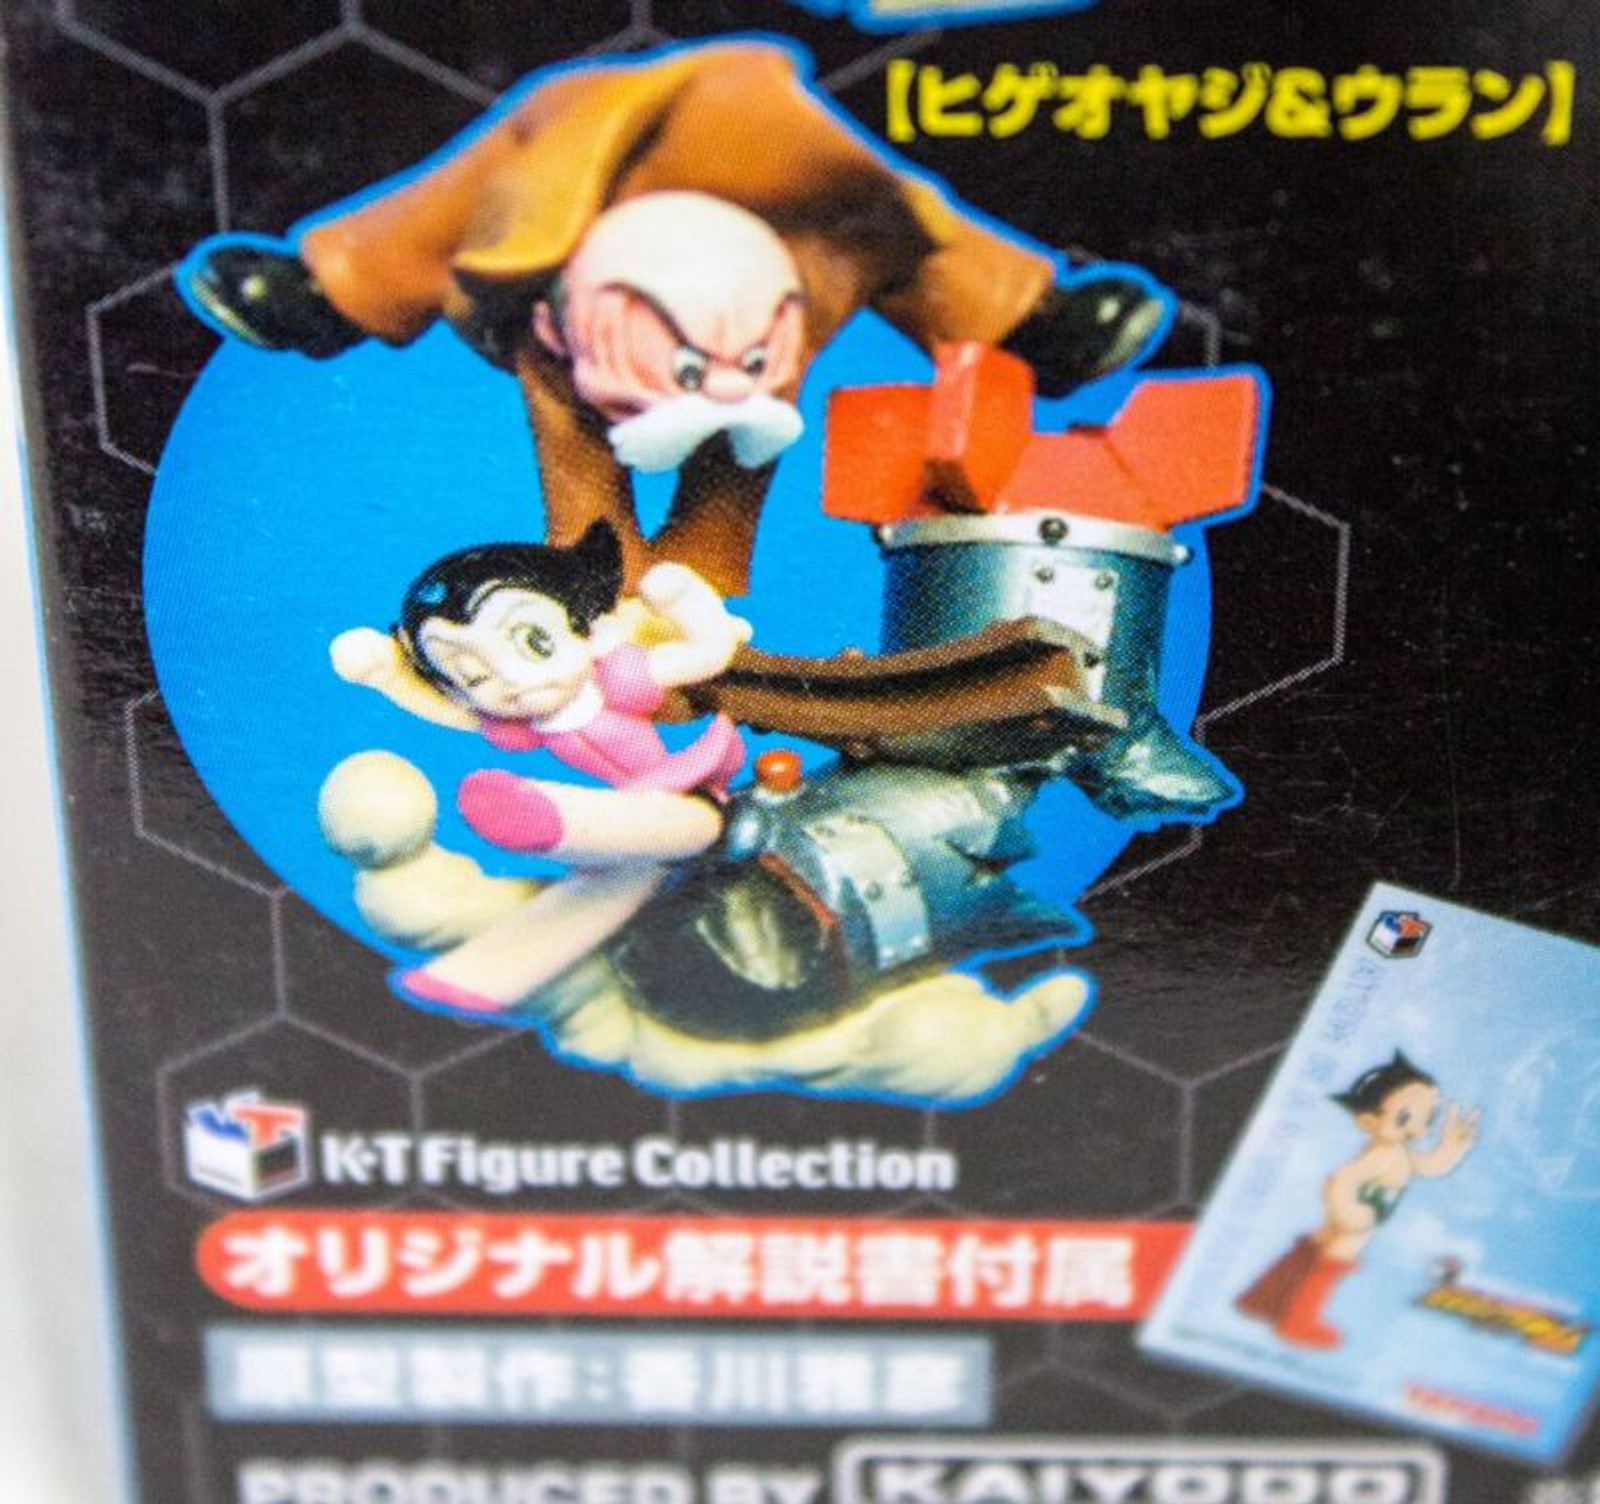 Astro Boy Higeoyaji Uran K.T Scene Figure Collection 1 Takara JAPAN ANIME